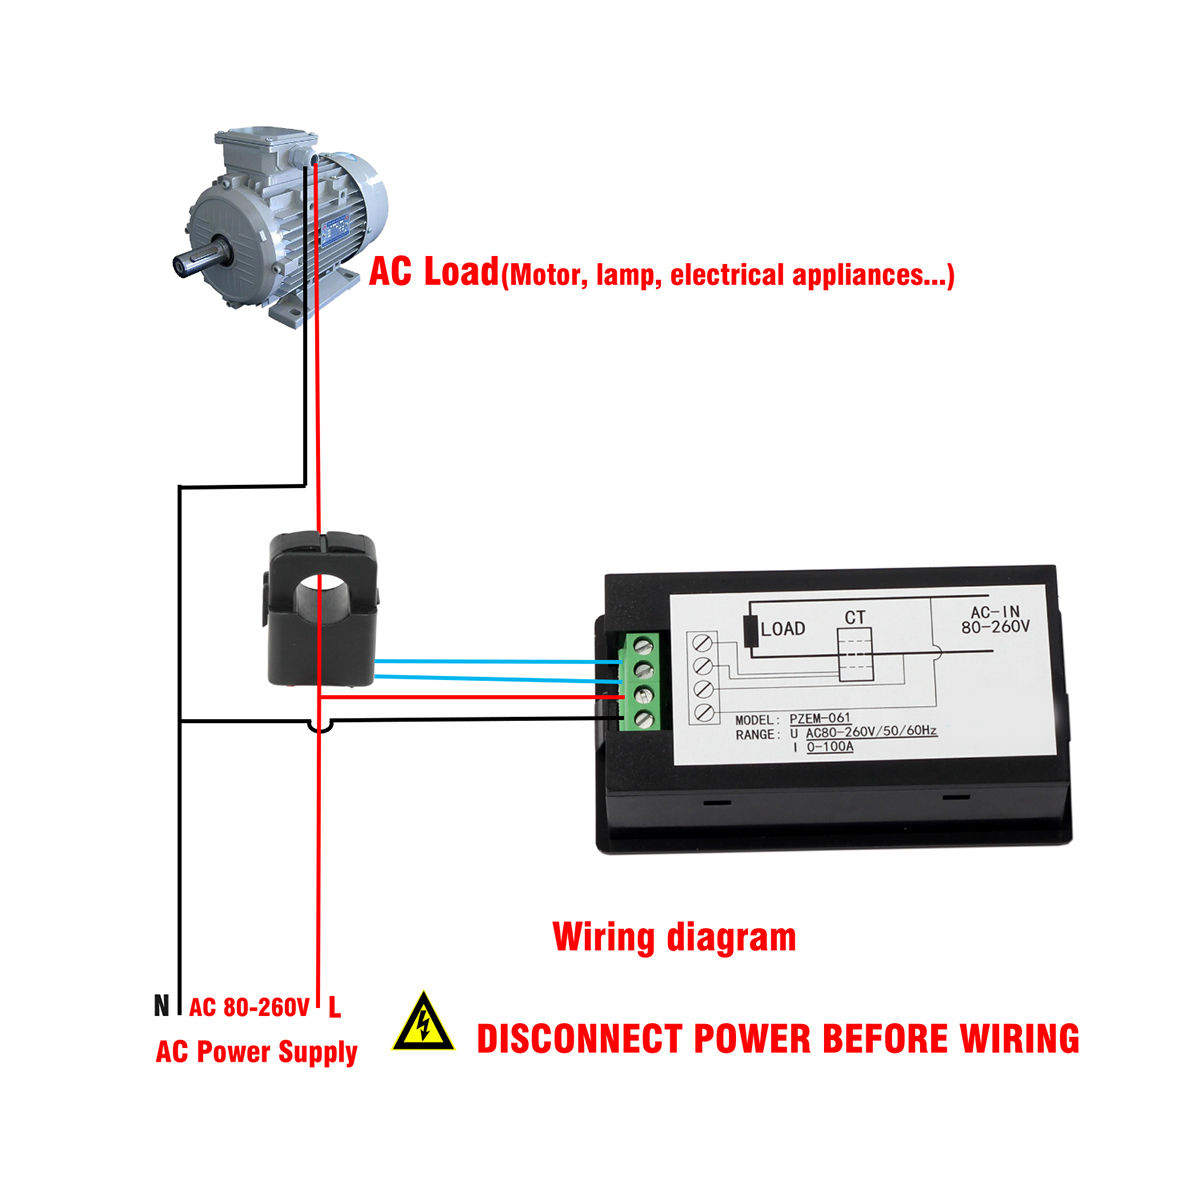 Watt Meter Wiring Diagram Of Online Schematics Three Phase Ammeter Digital Ac 80 260v 100a Volt Amp Power Kwh Monitor 3